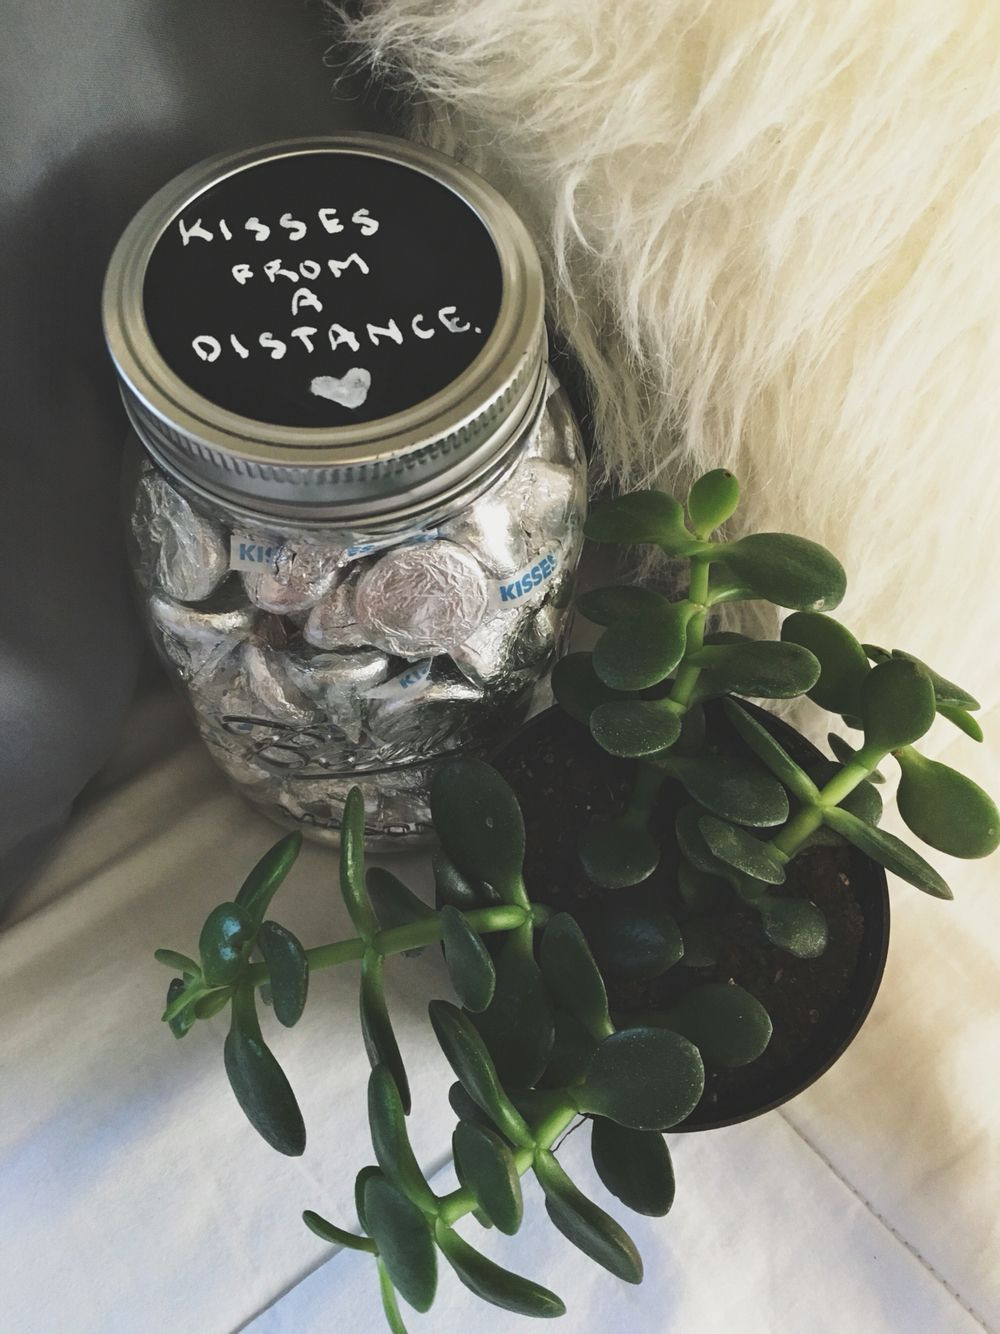 Best ideas about Girlfriend Gift Ideas Pinterest . Save or Pin Long Distance Relationship Gift for Boyfriend Now.